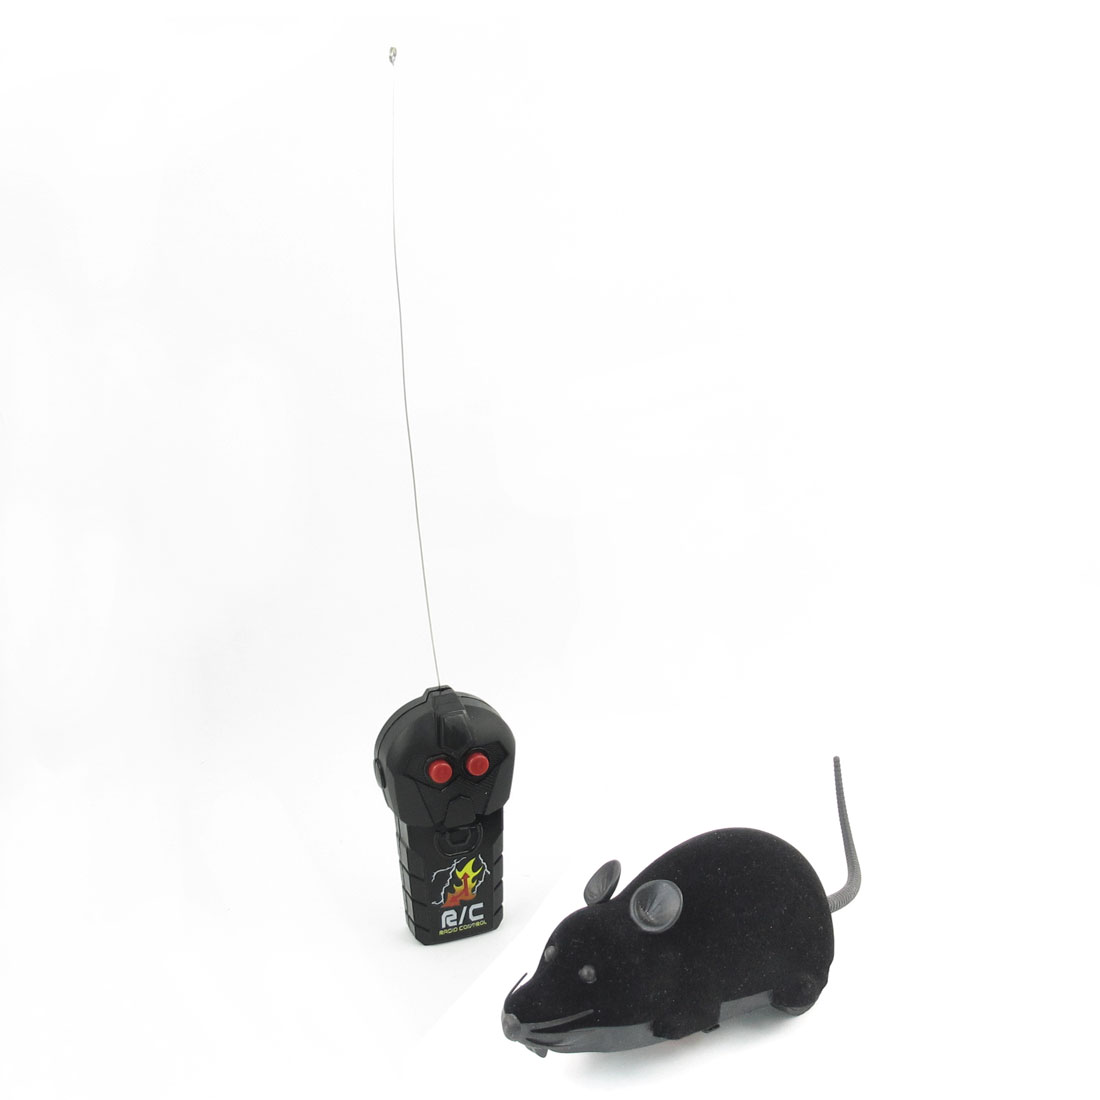 Black Emulational Remote Control Moving Mouse Toy for Child